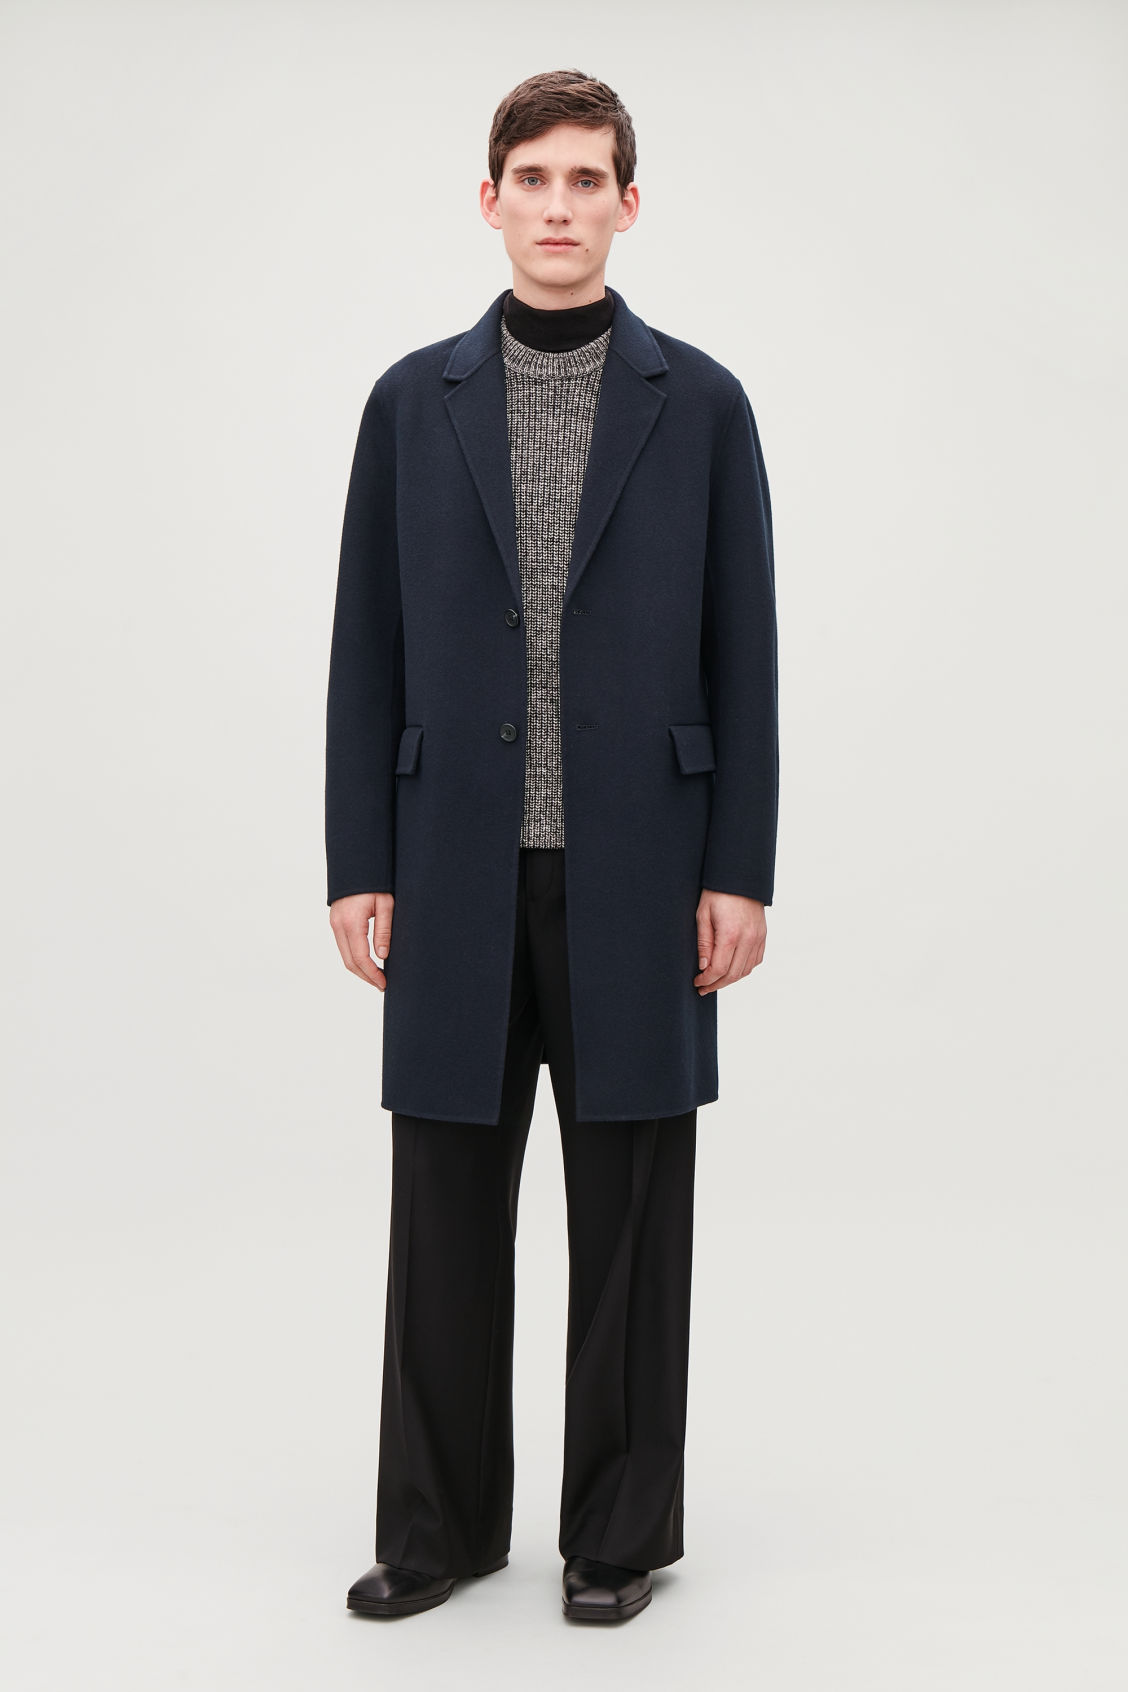 0add7c8f9356 DECONSTRUCTED WOOL COAT - Navy - Coats and Jackets - COS